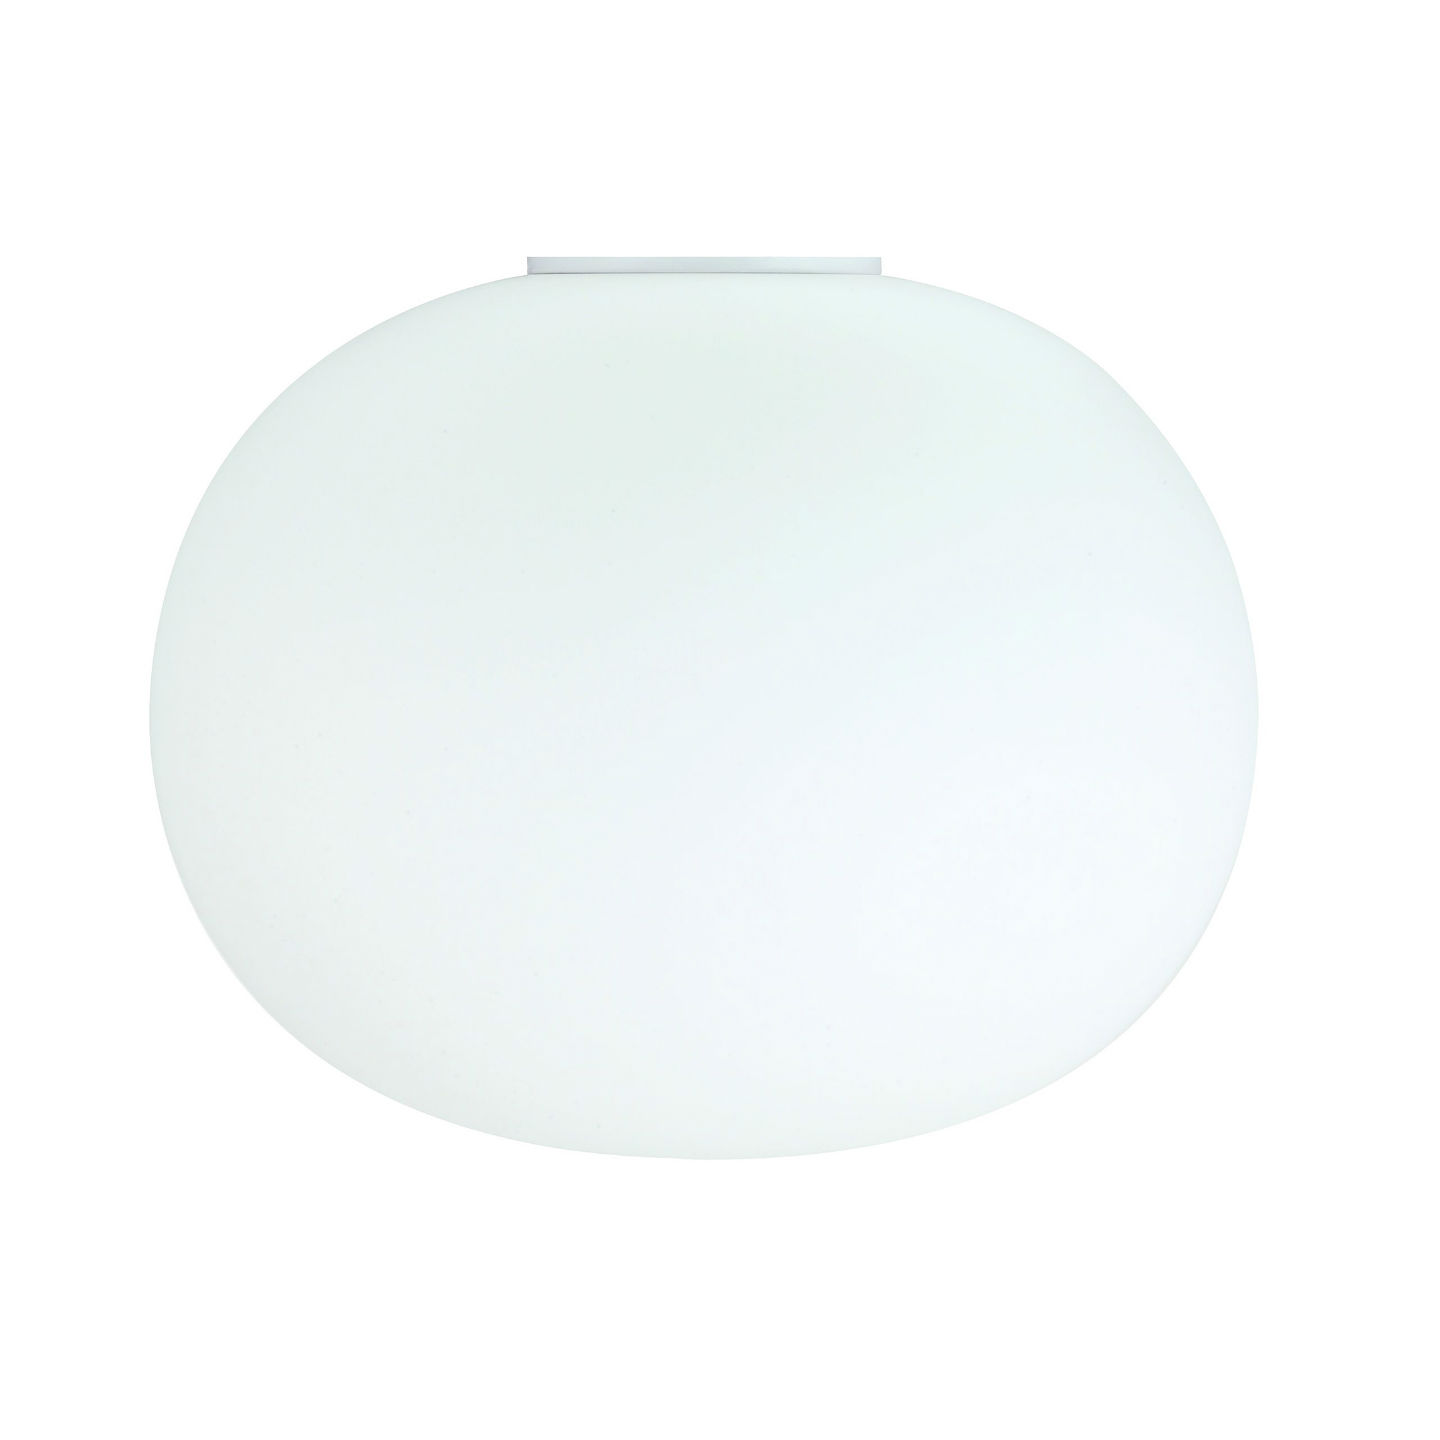 Glo Ball C2 ceiling lamp 45cm E27 205W - white opal